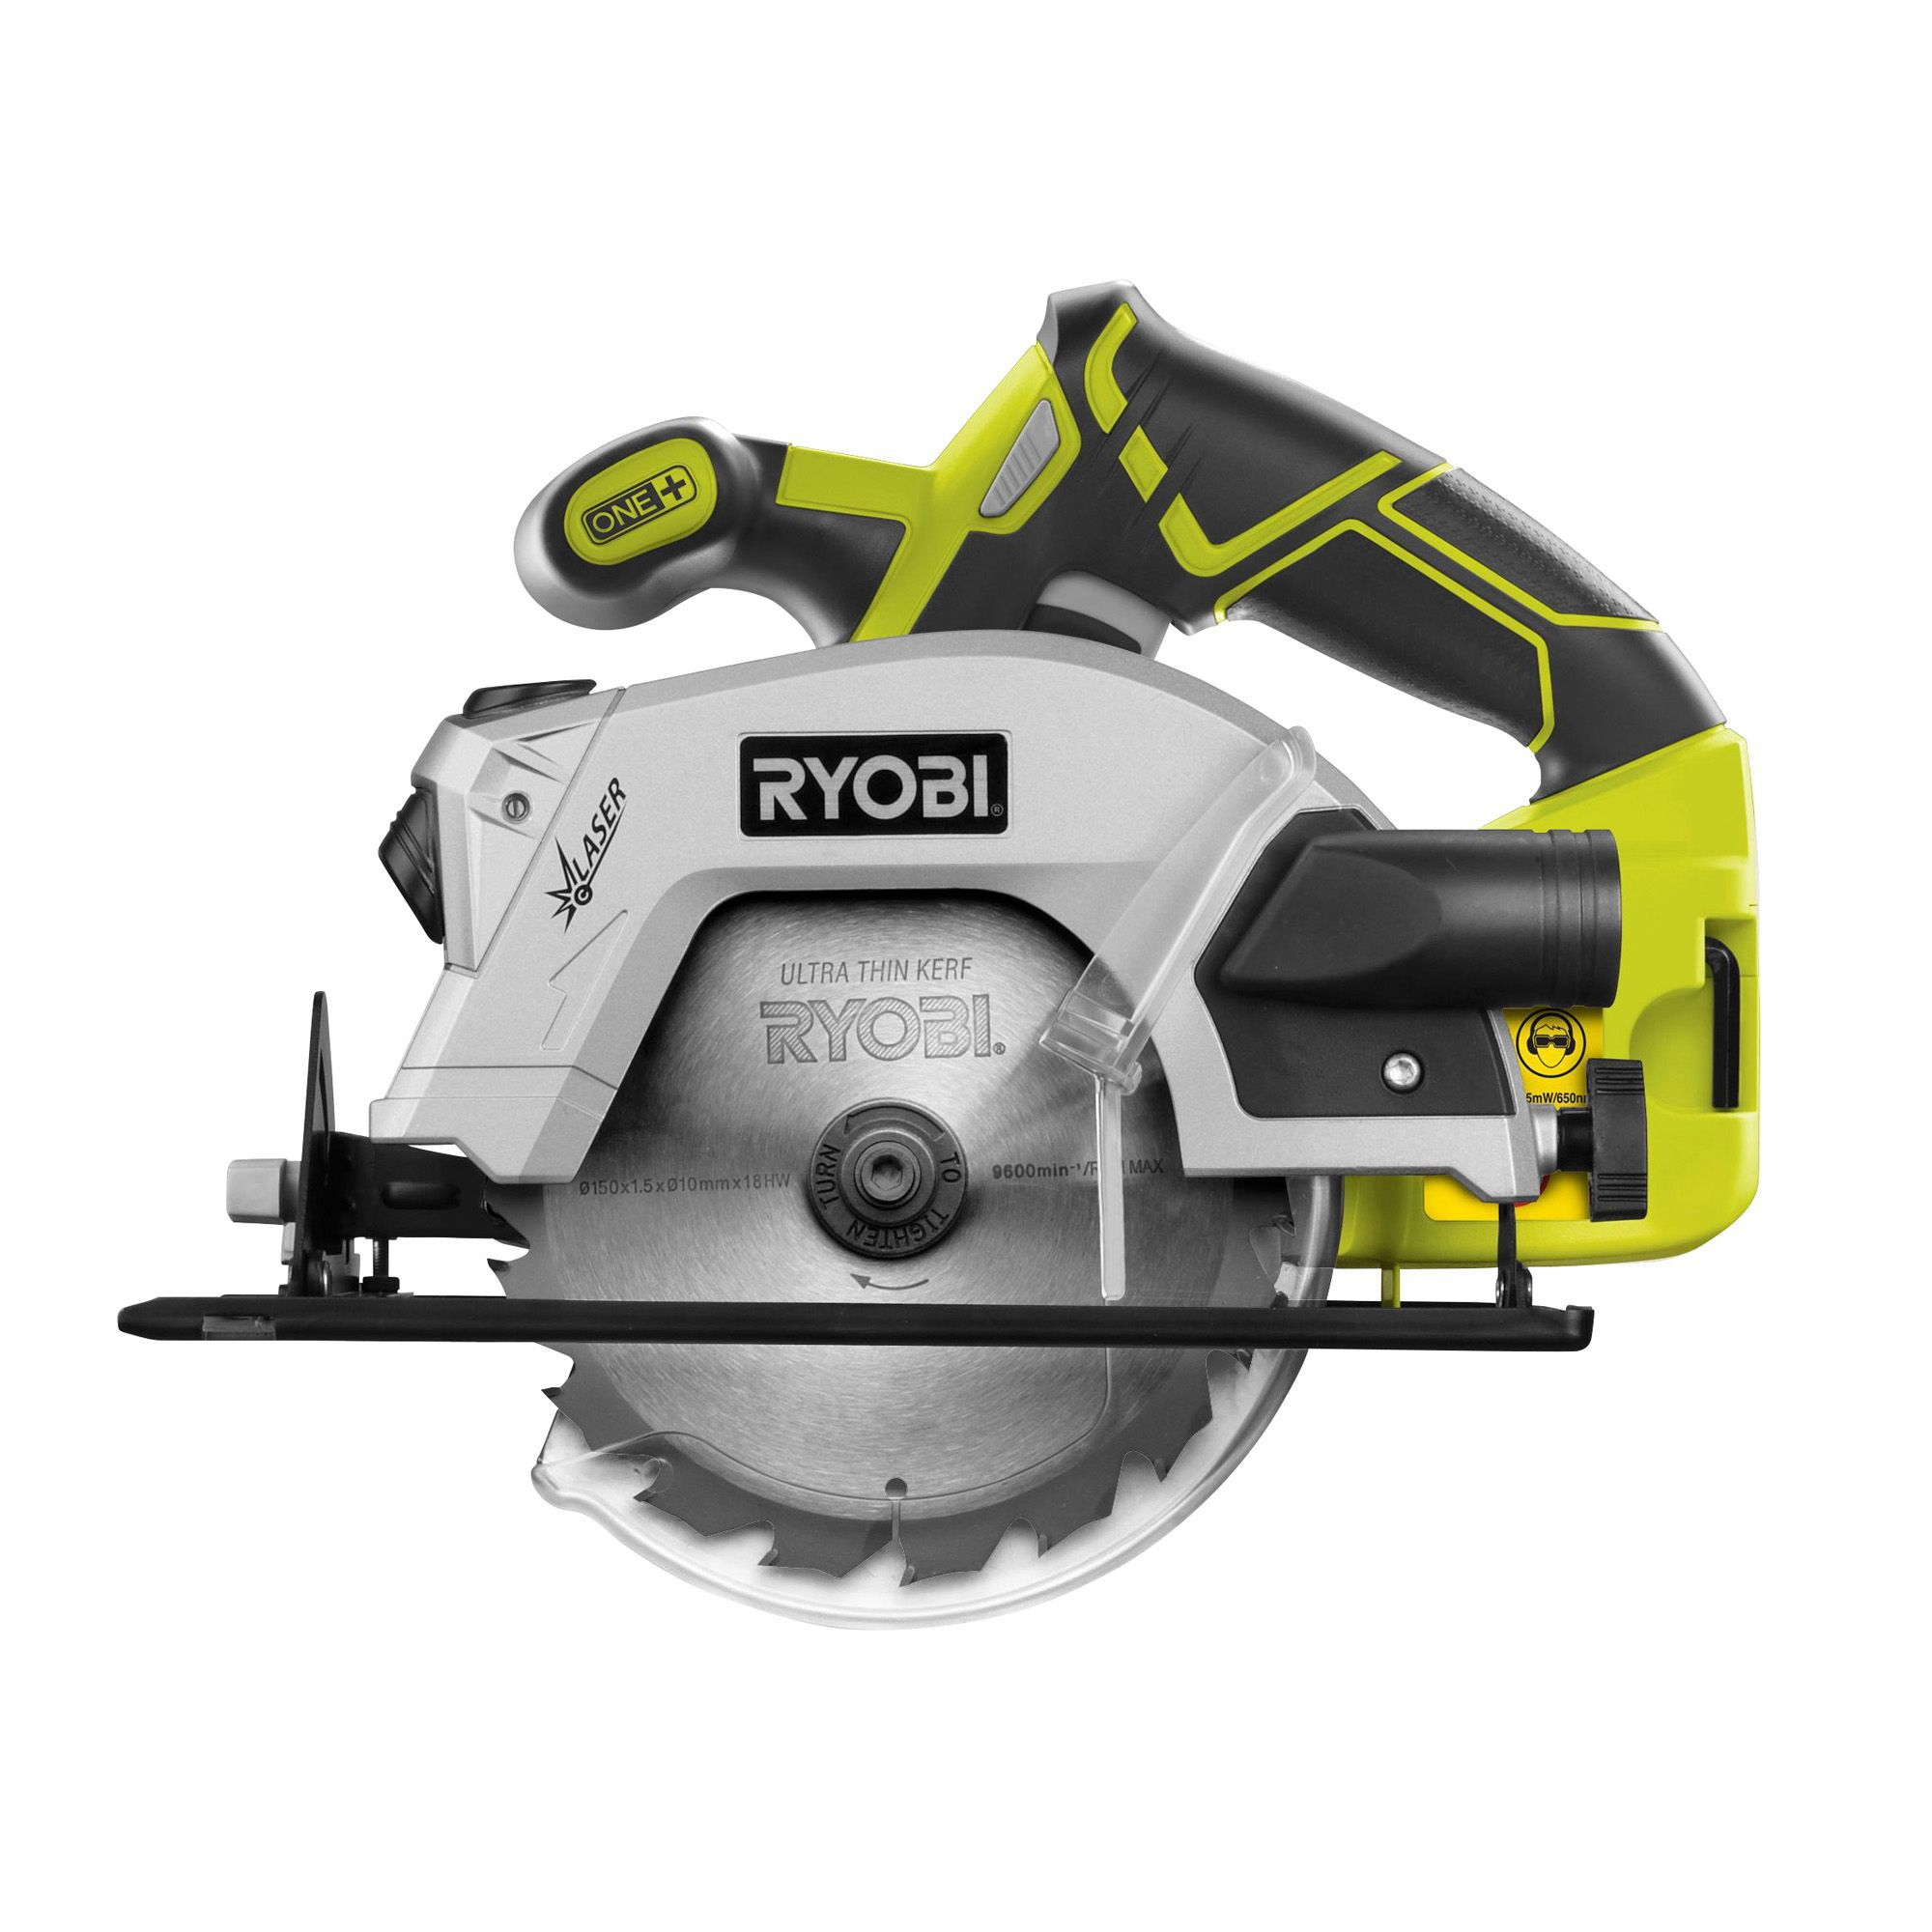 Ryobi one 18v 150mm cordless circular saw rwsl1801m bare ryobi one 18v 150mm cordless circular saw rwsl1801m bare departments diy at bq greentooth Image collections